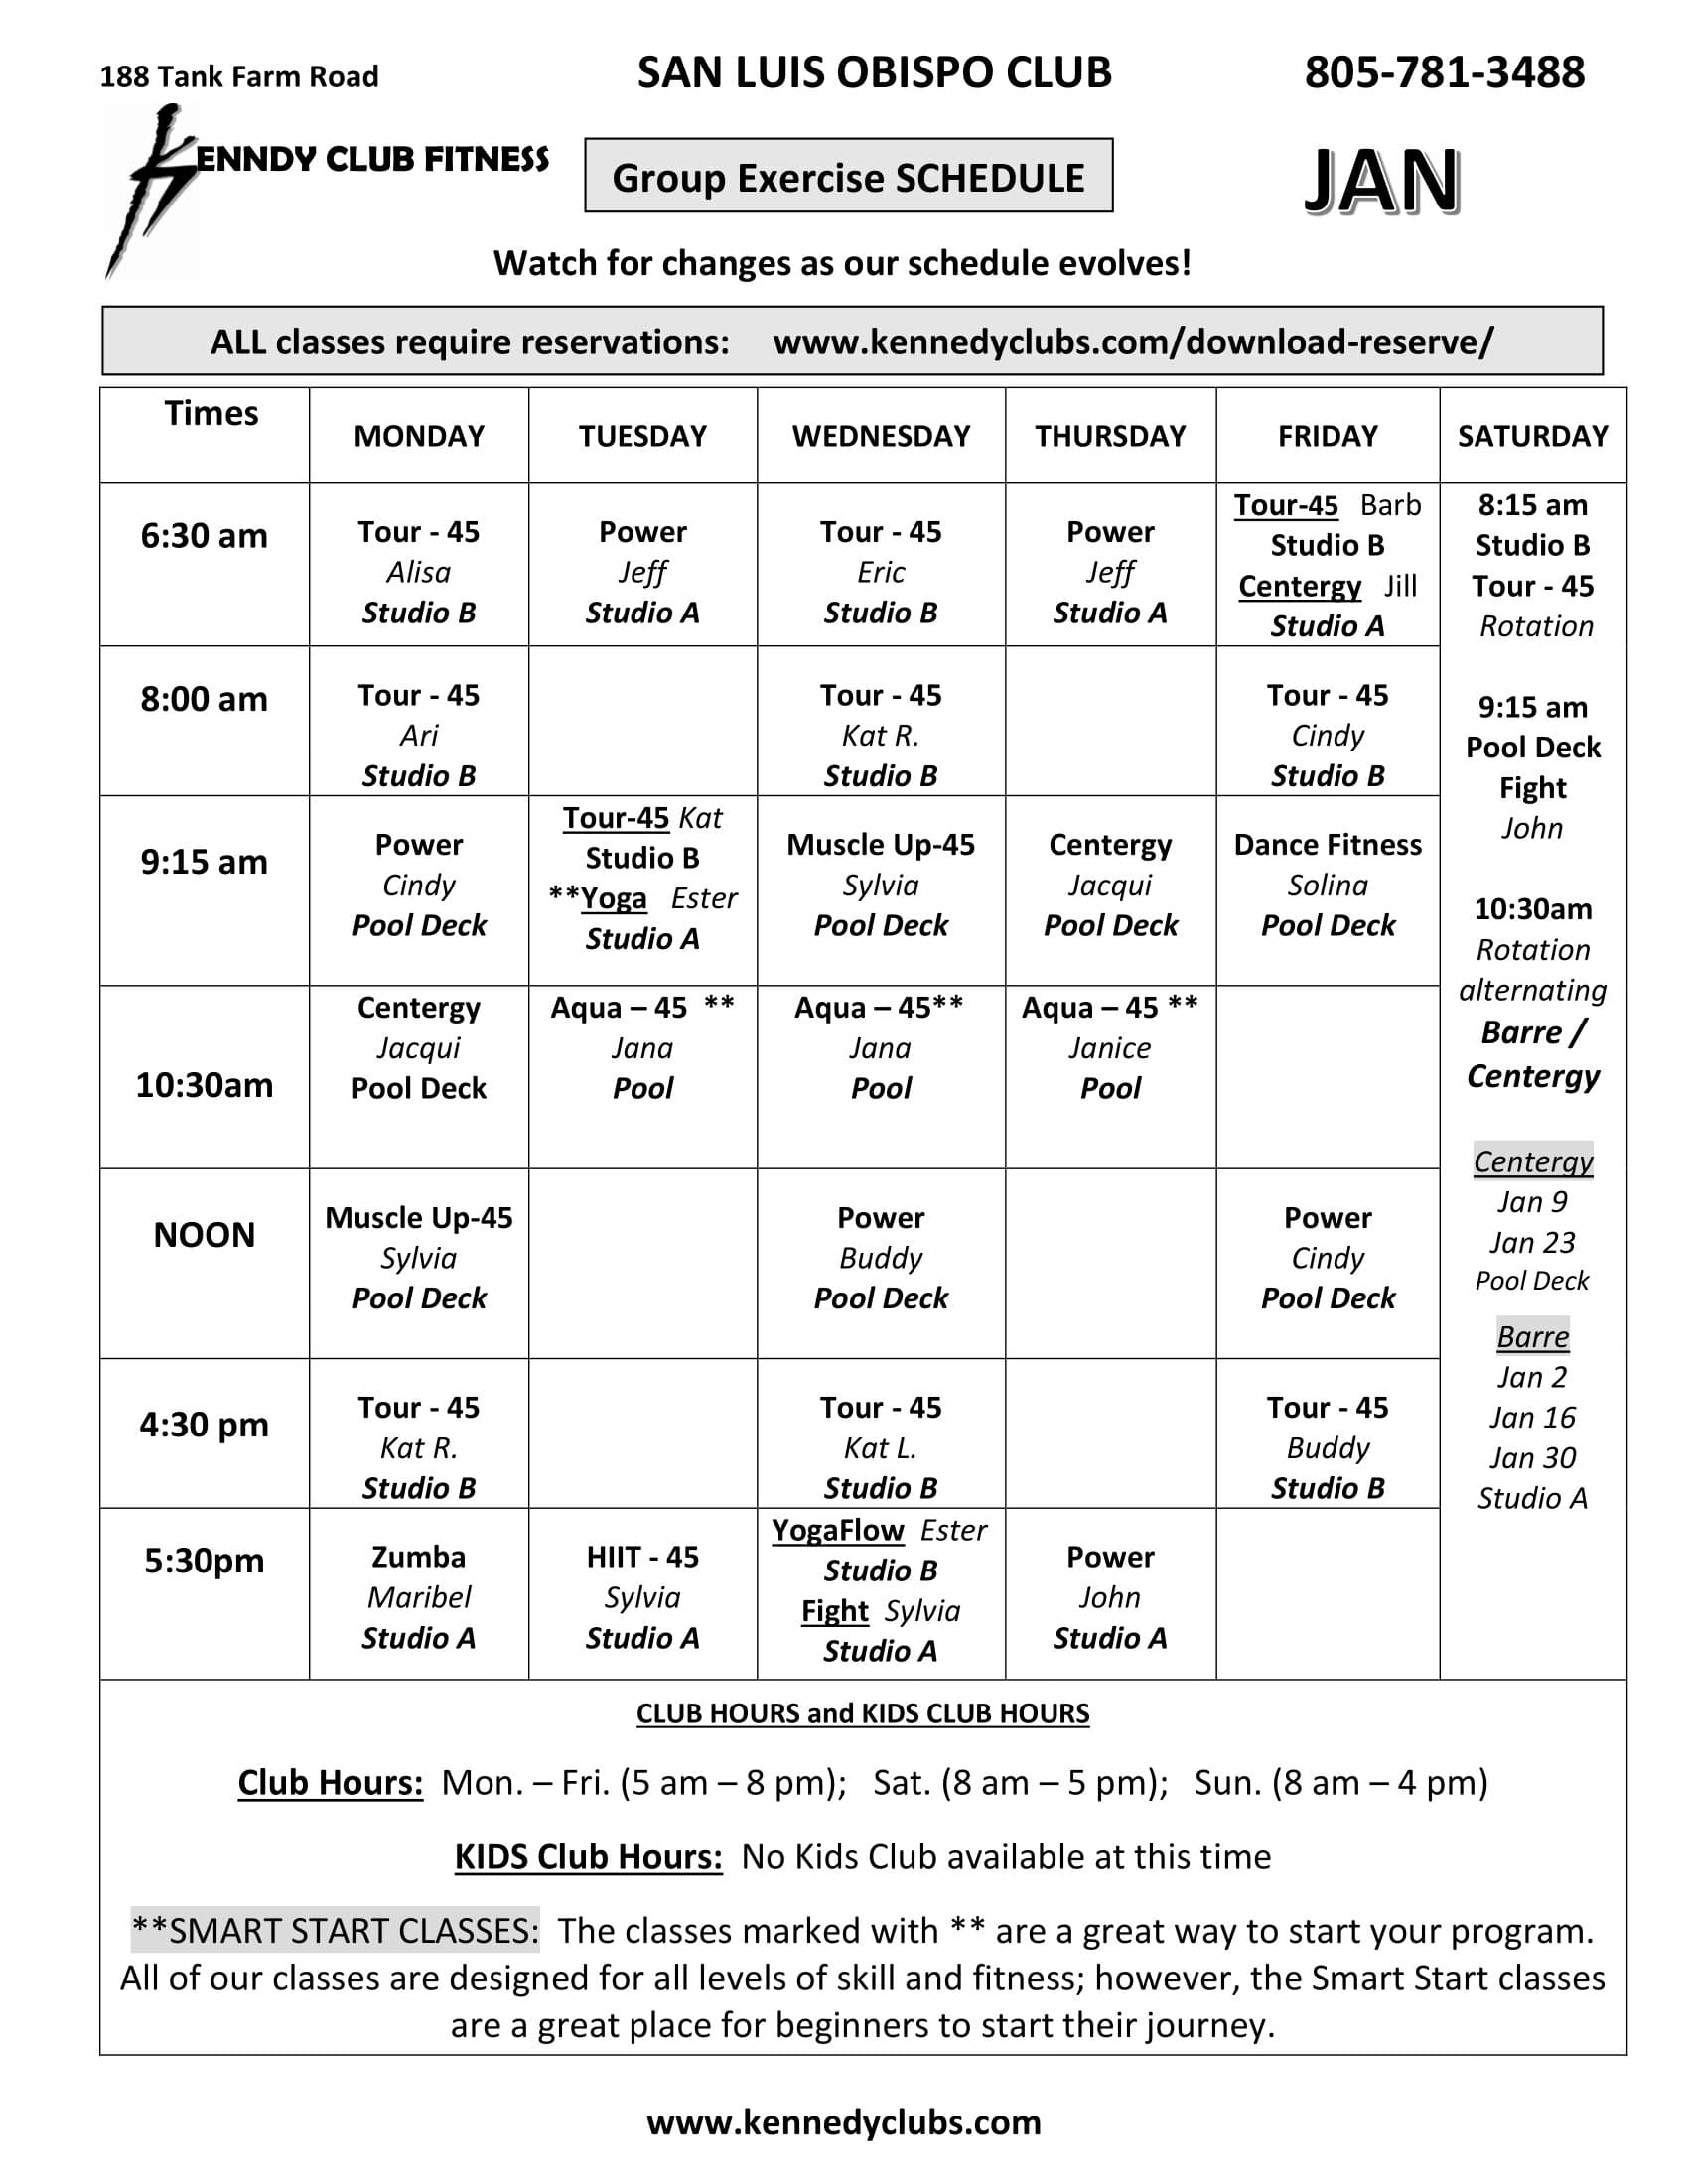 Kennedy Club Fitness San Luis Obispo Group Exercise Schedule 01 01 2021